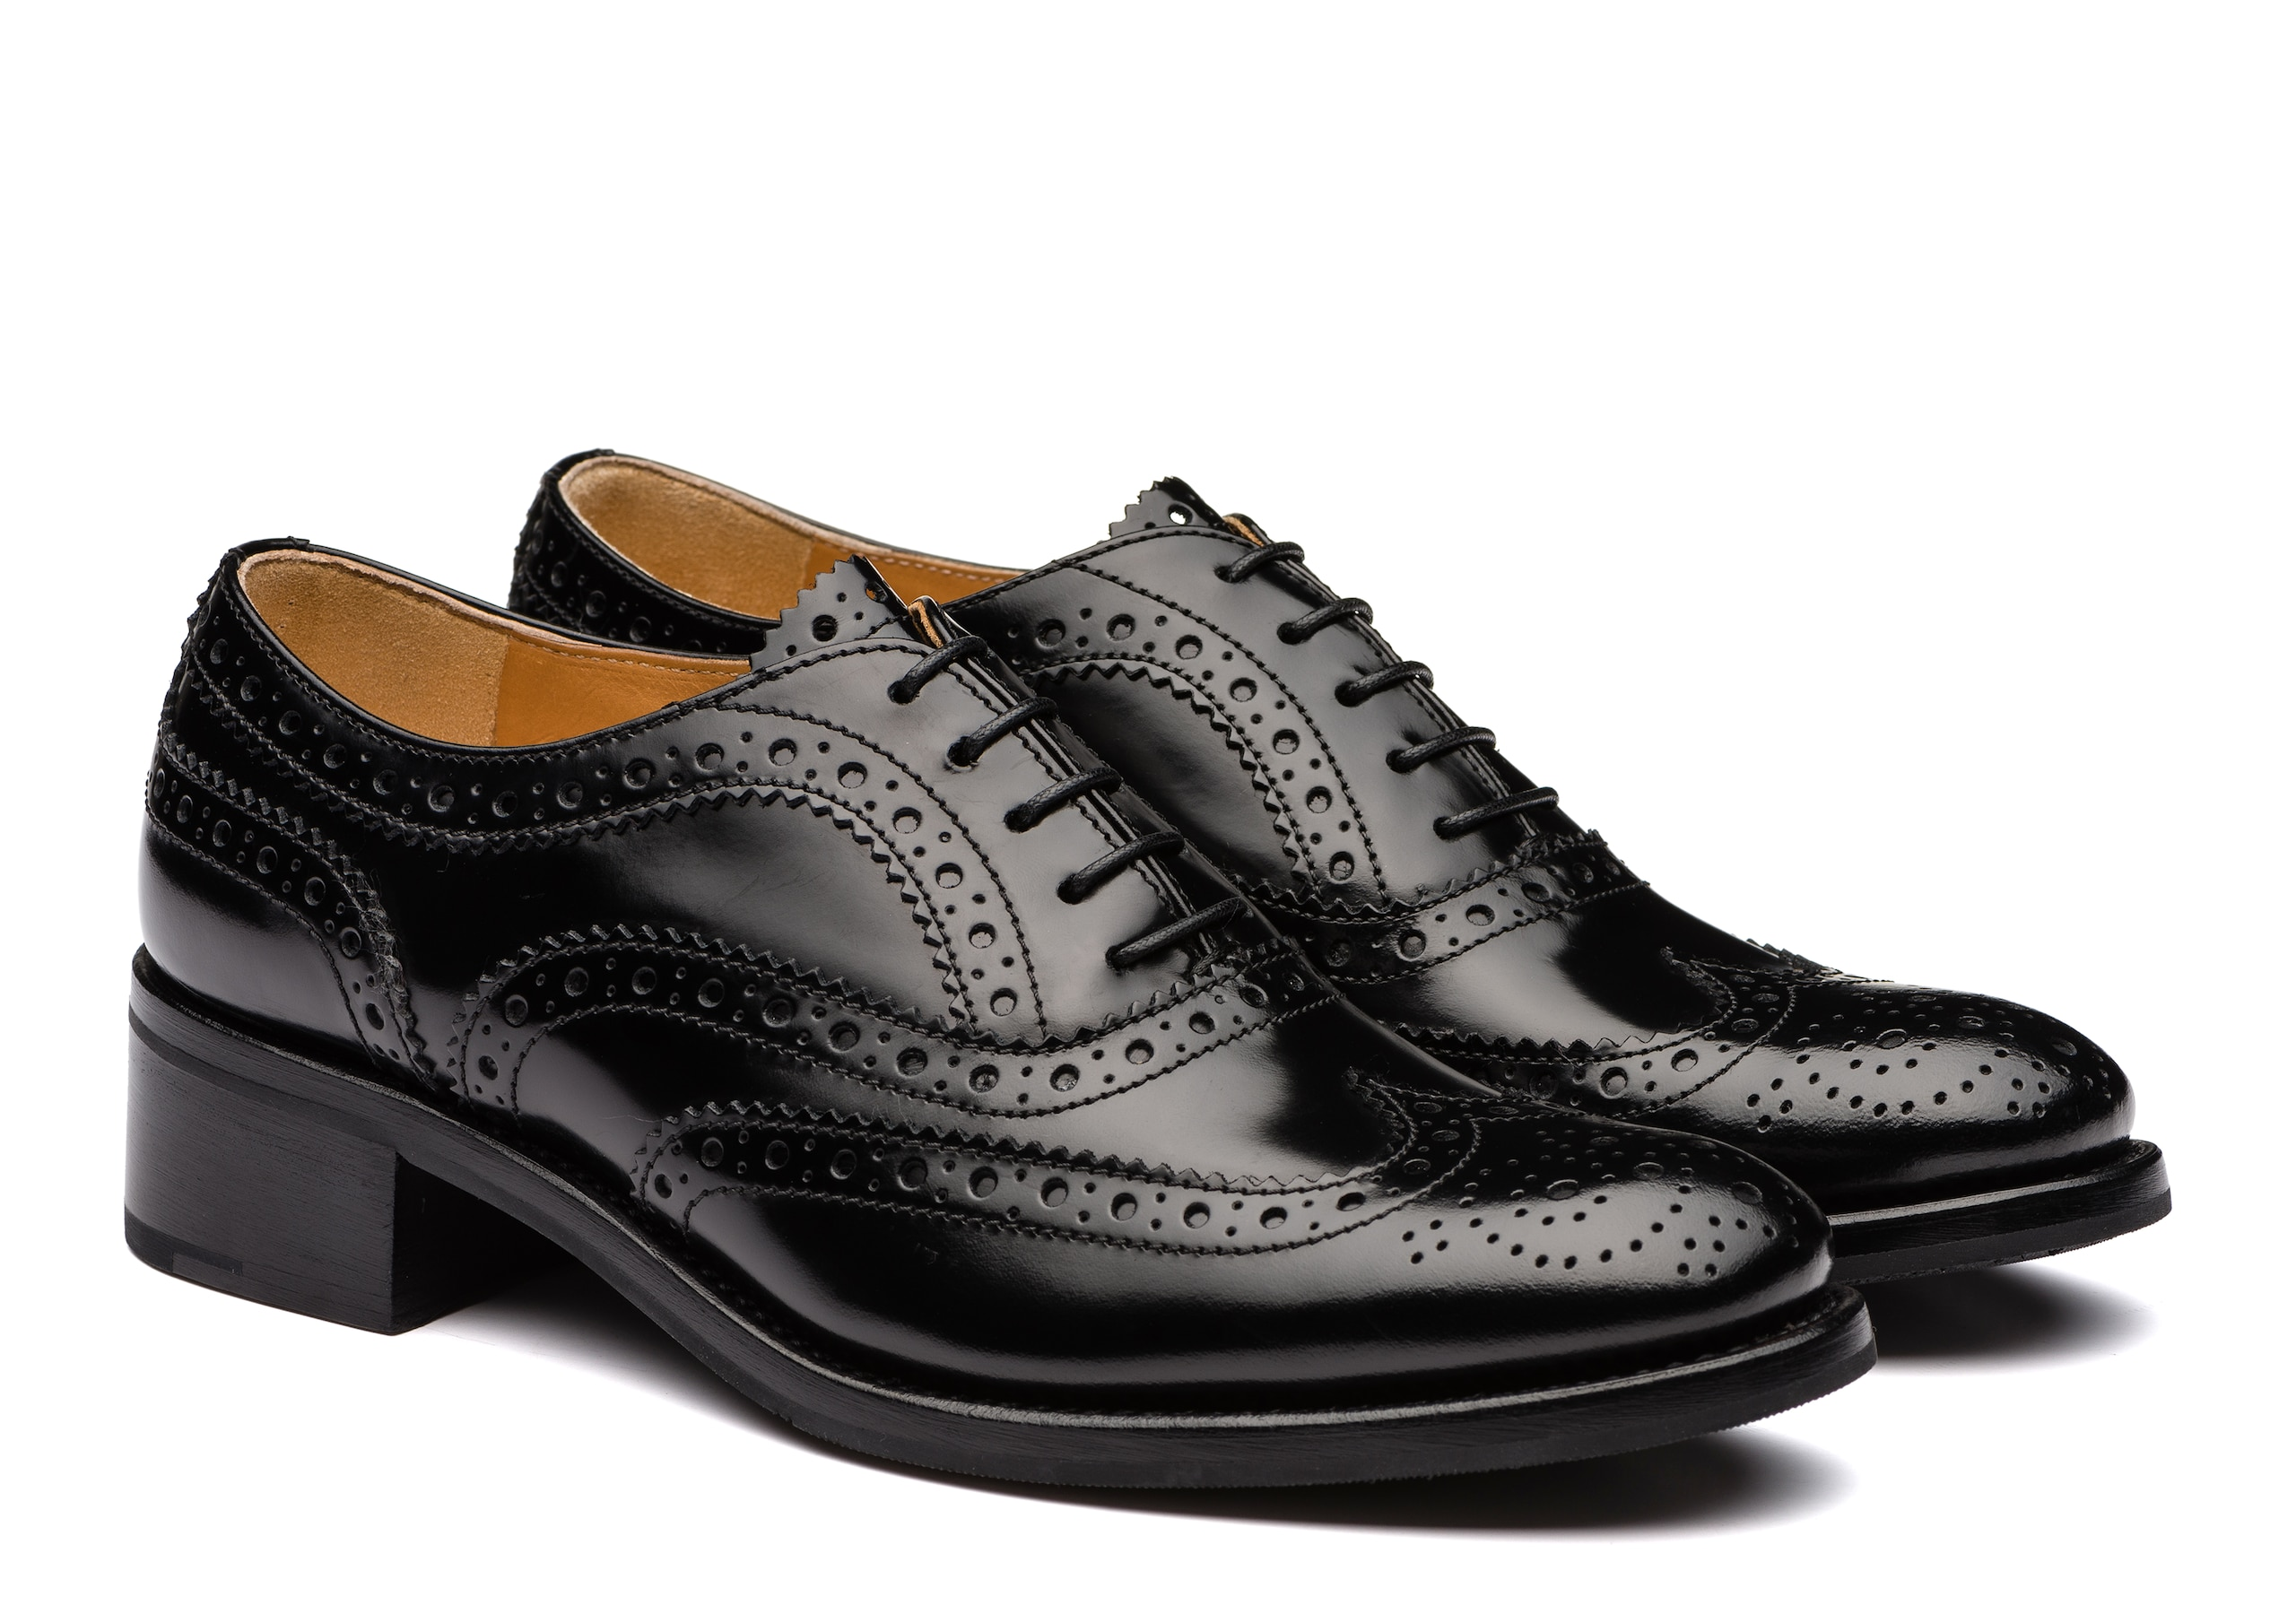 Burwood 35 Church's Polished Fumè Heeled Oxford Brogue Black